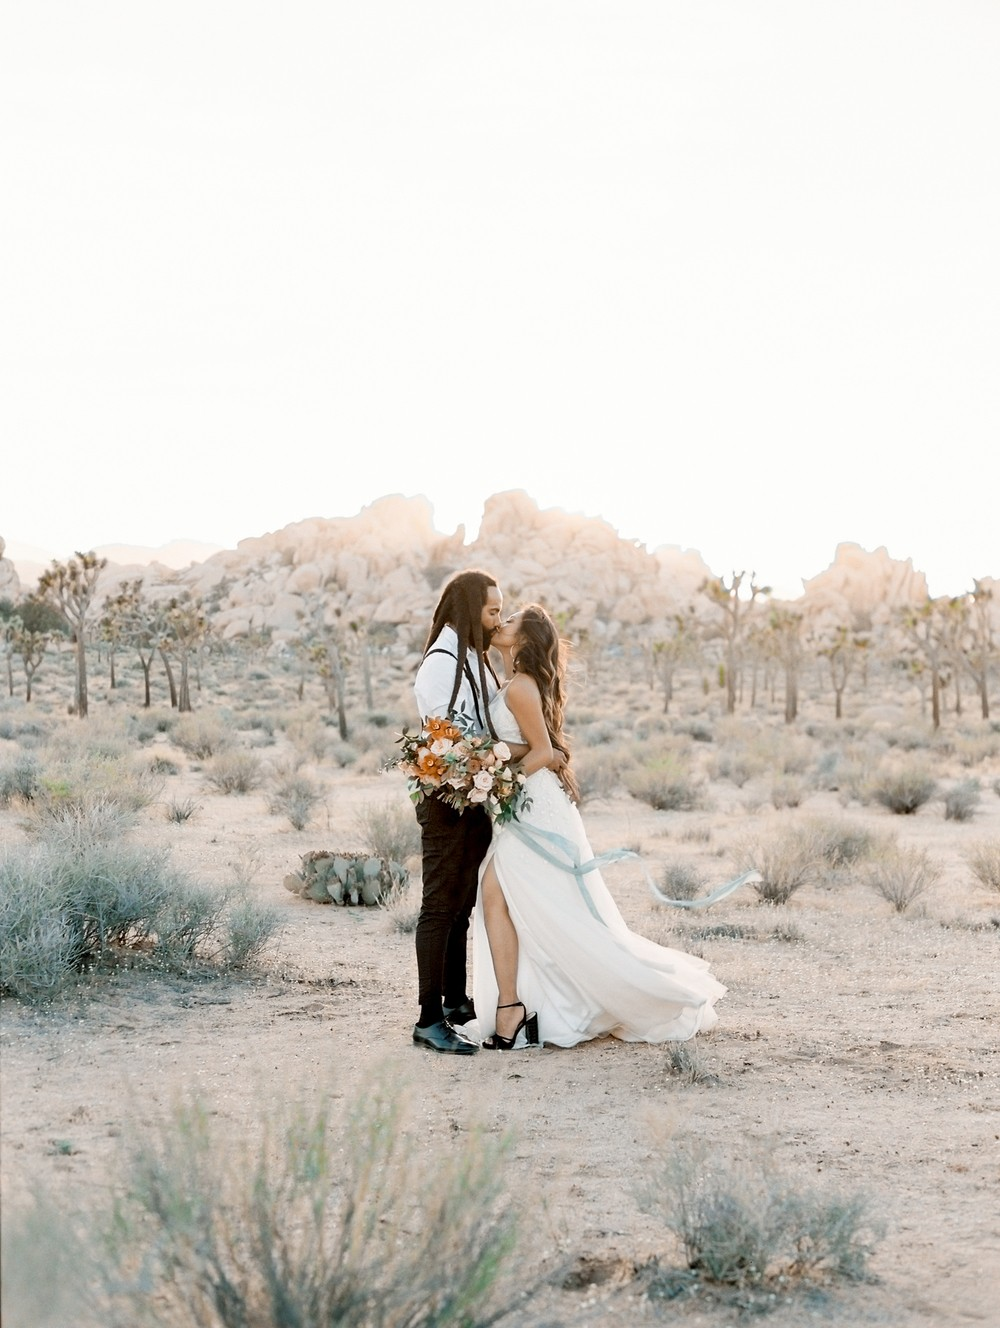 Fruity Joshua Tree Wedding Inspiration With A Former Contestant From